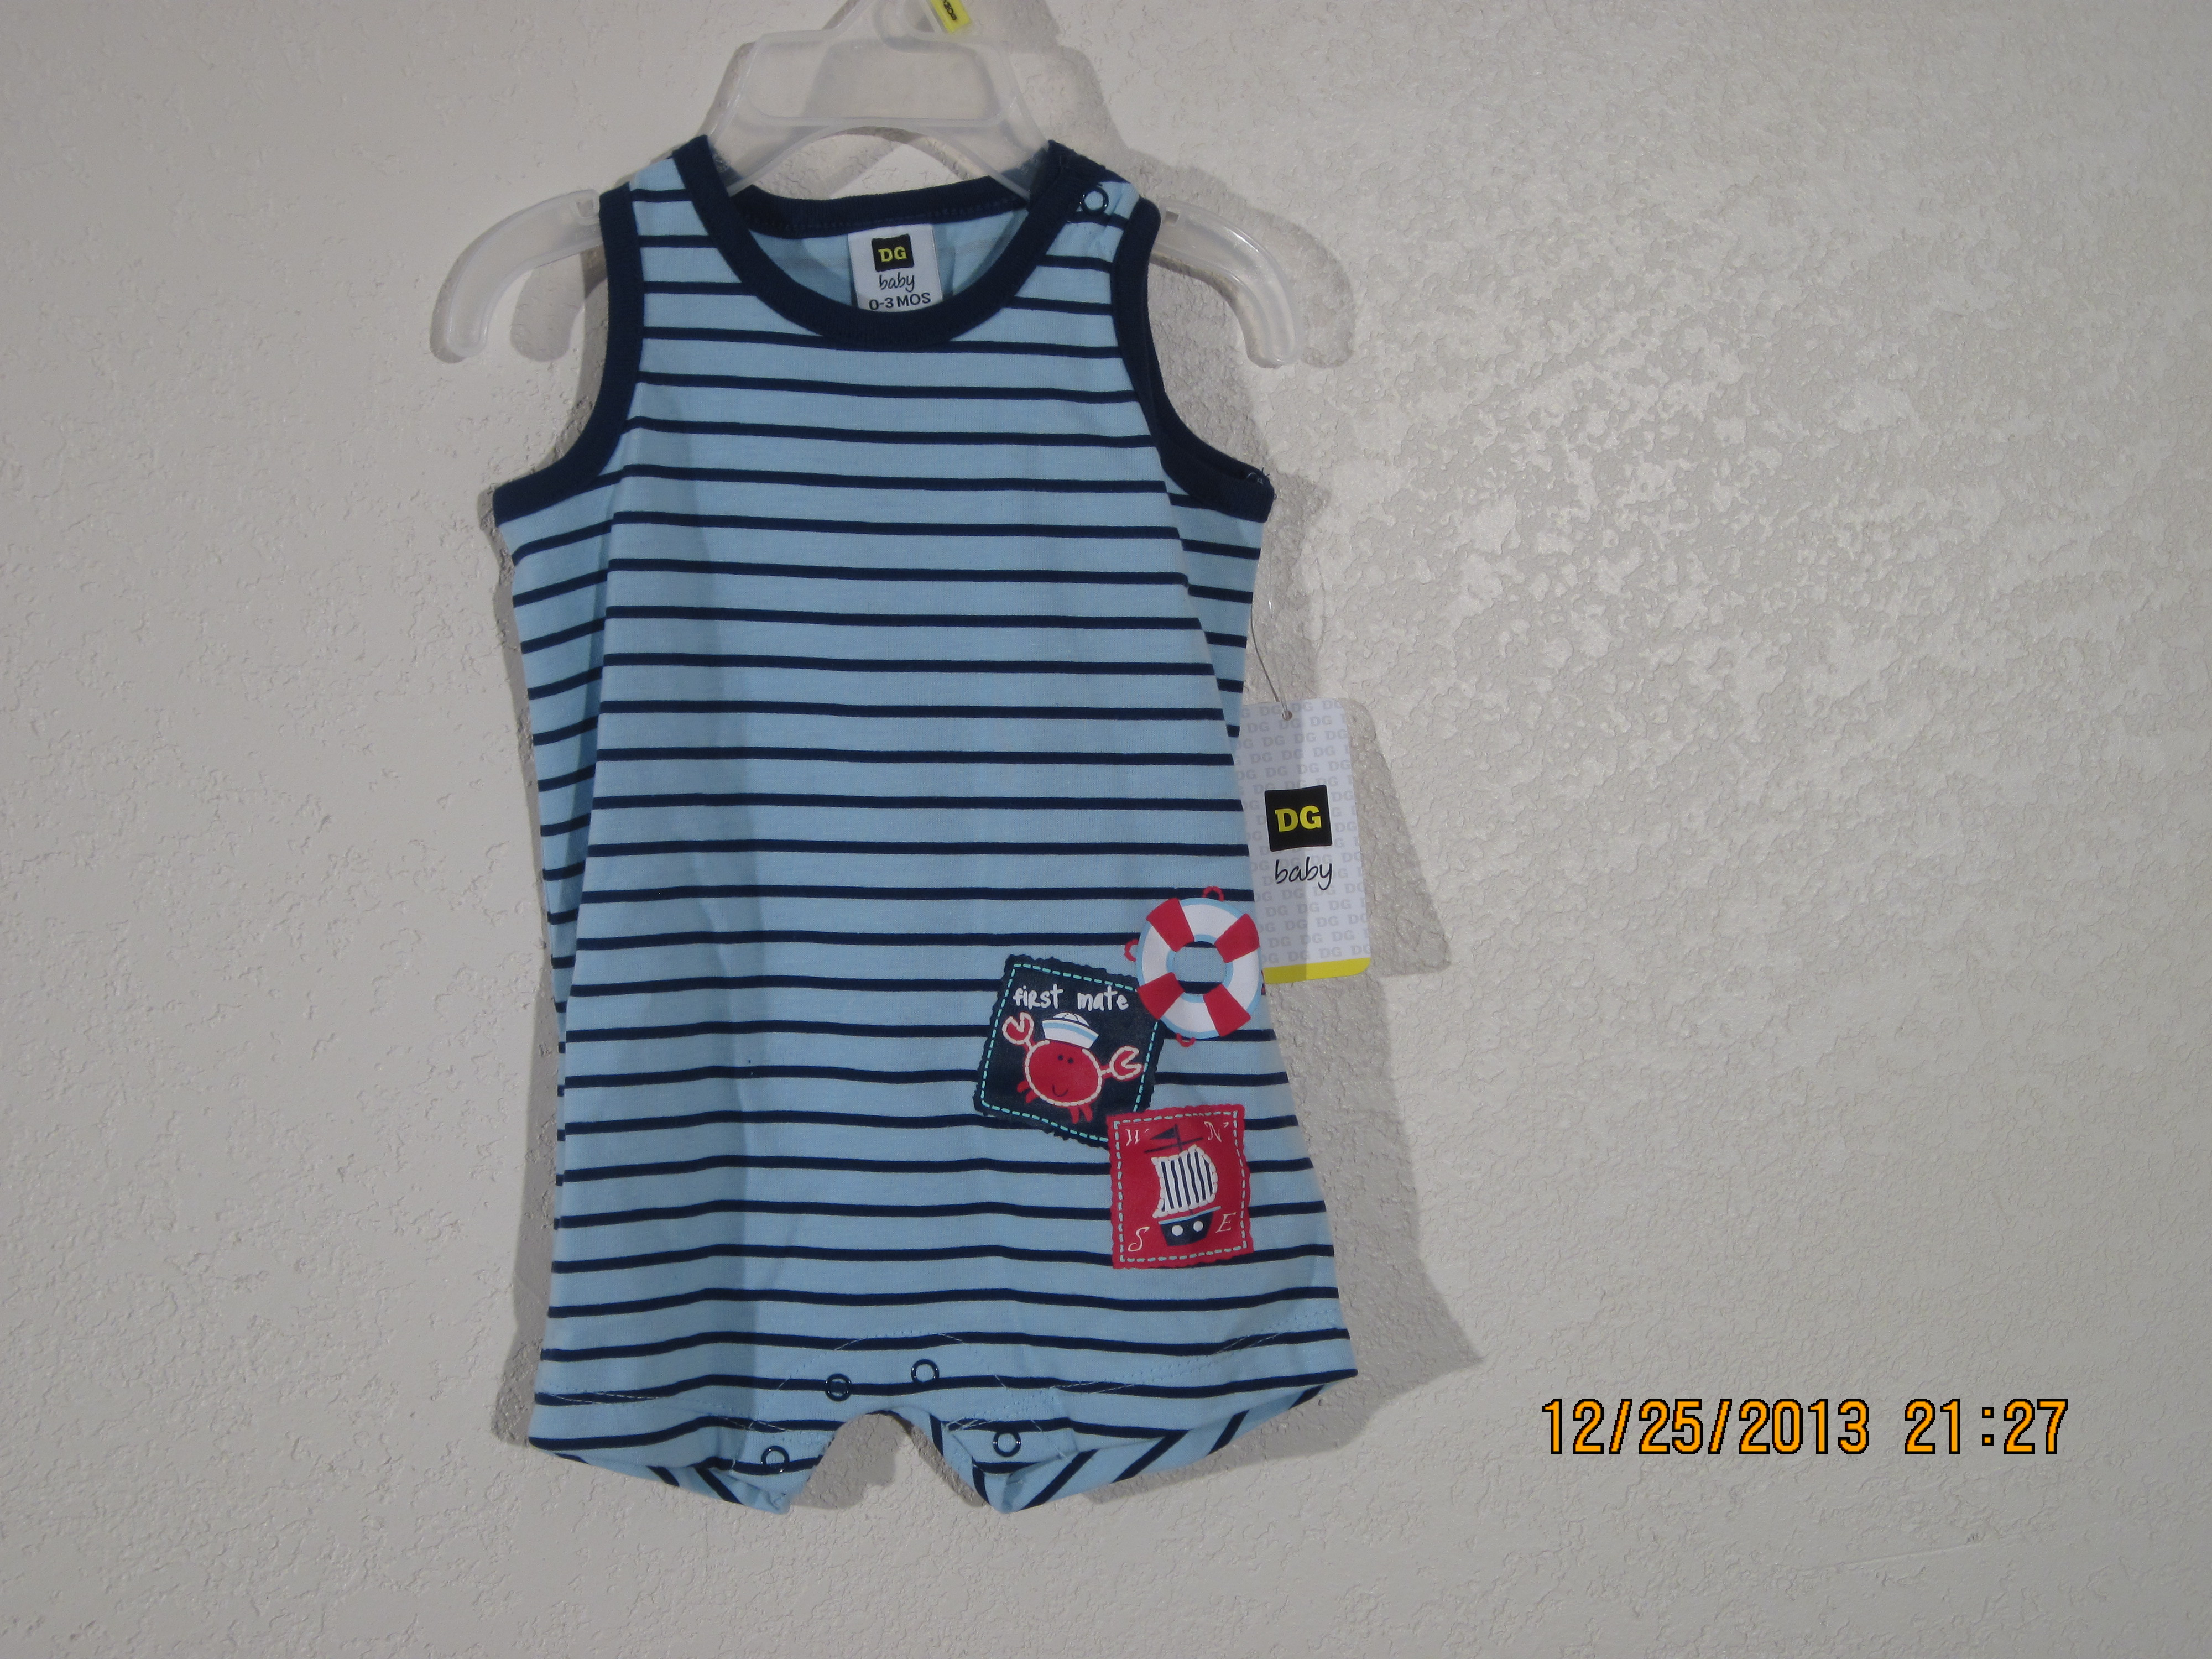 DG Baby Sz 0-3 Surf & Turf Onesie(Striped Blue)